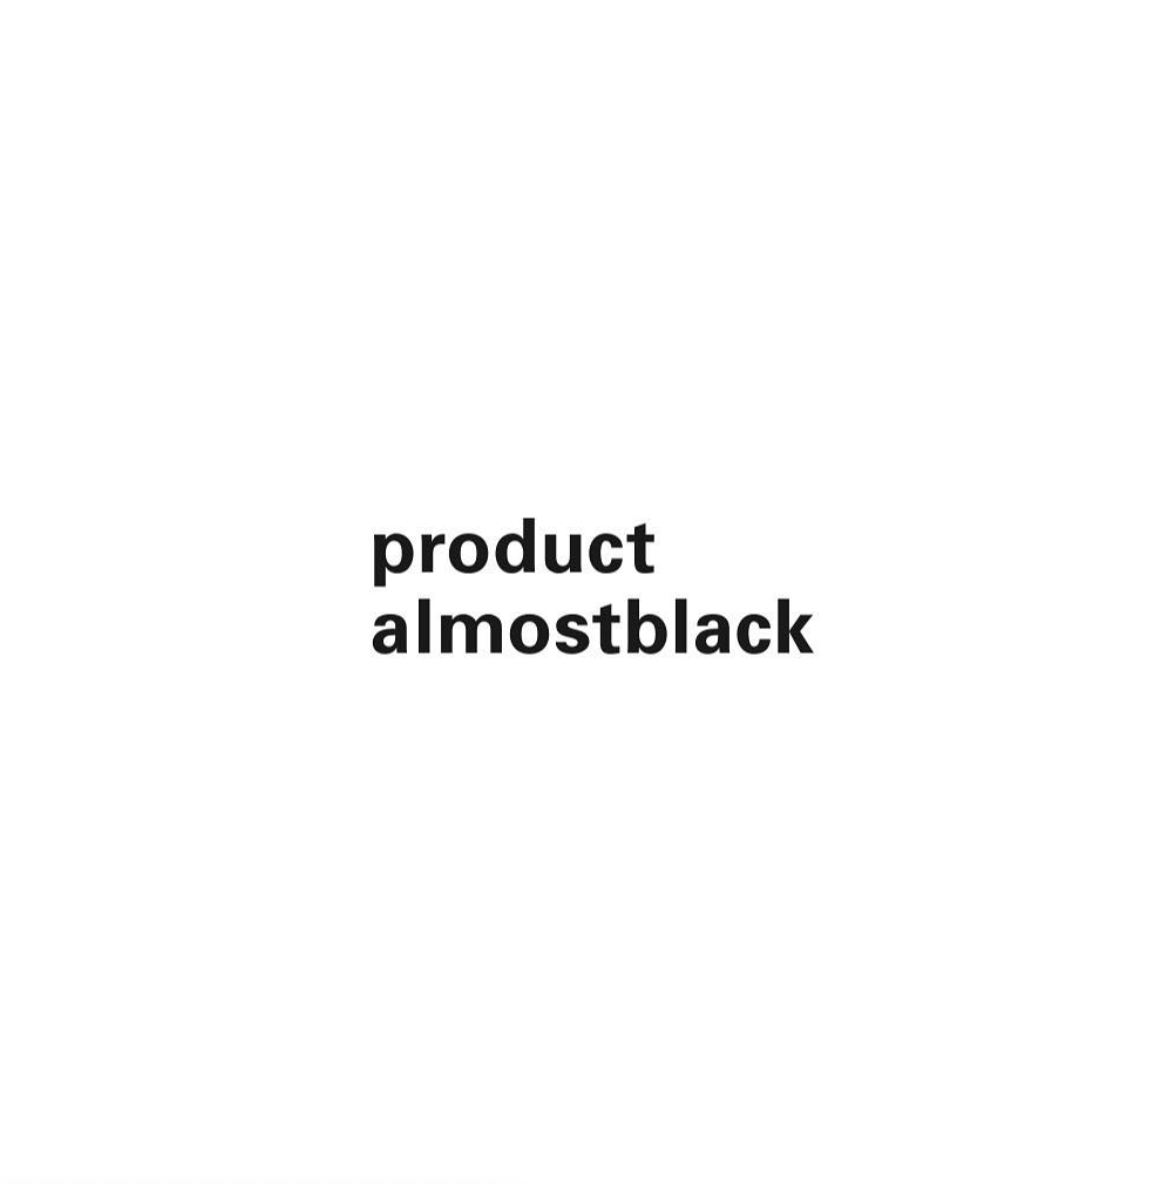 COAT -product almostblack-